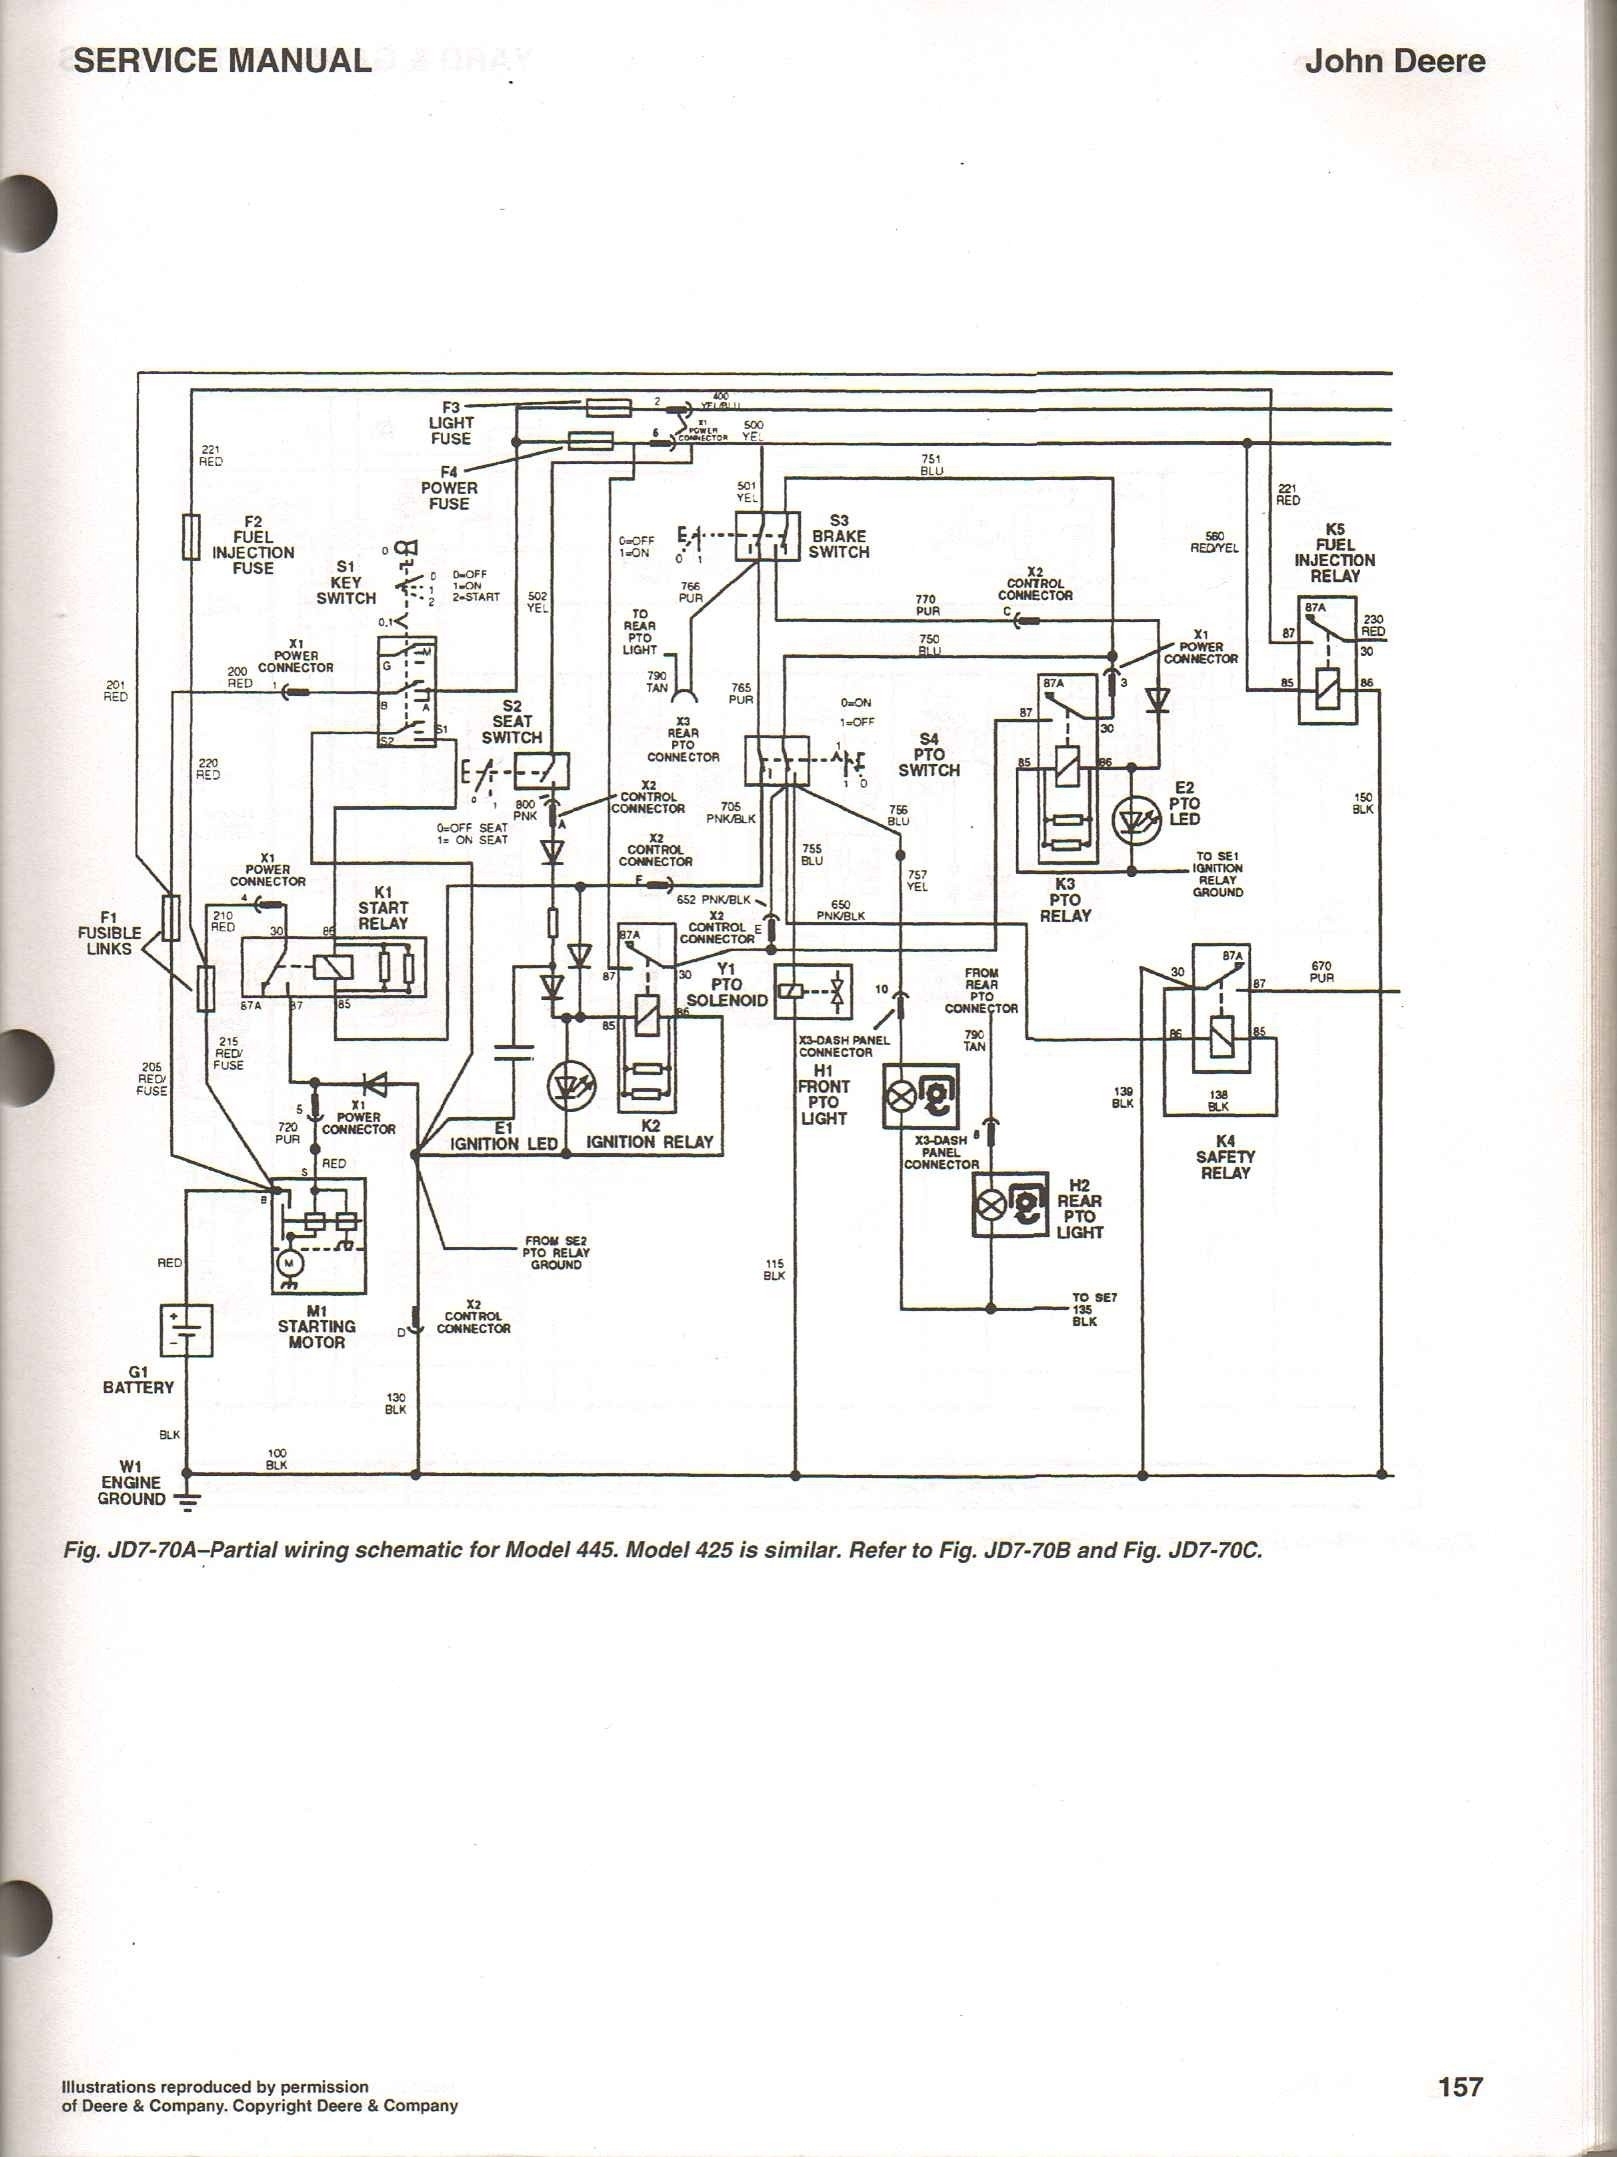 john deere 314 wiring harness diagram wiring diagram  john deere l130 mower wiring diagram #15